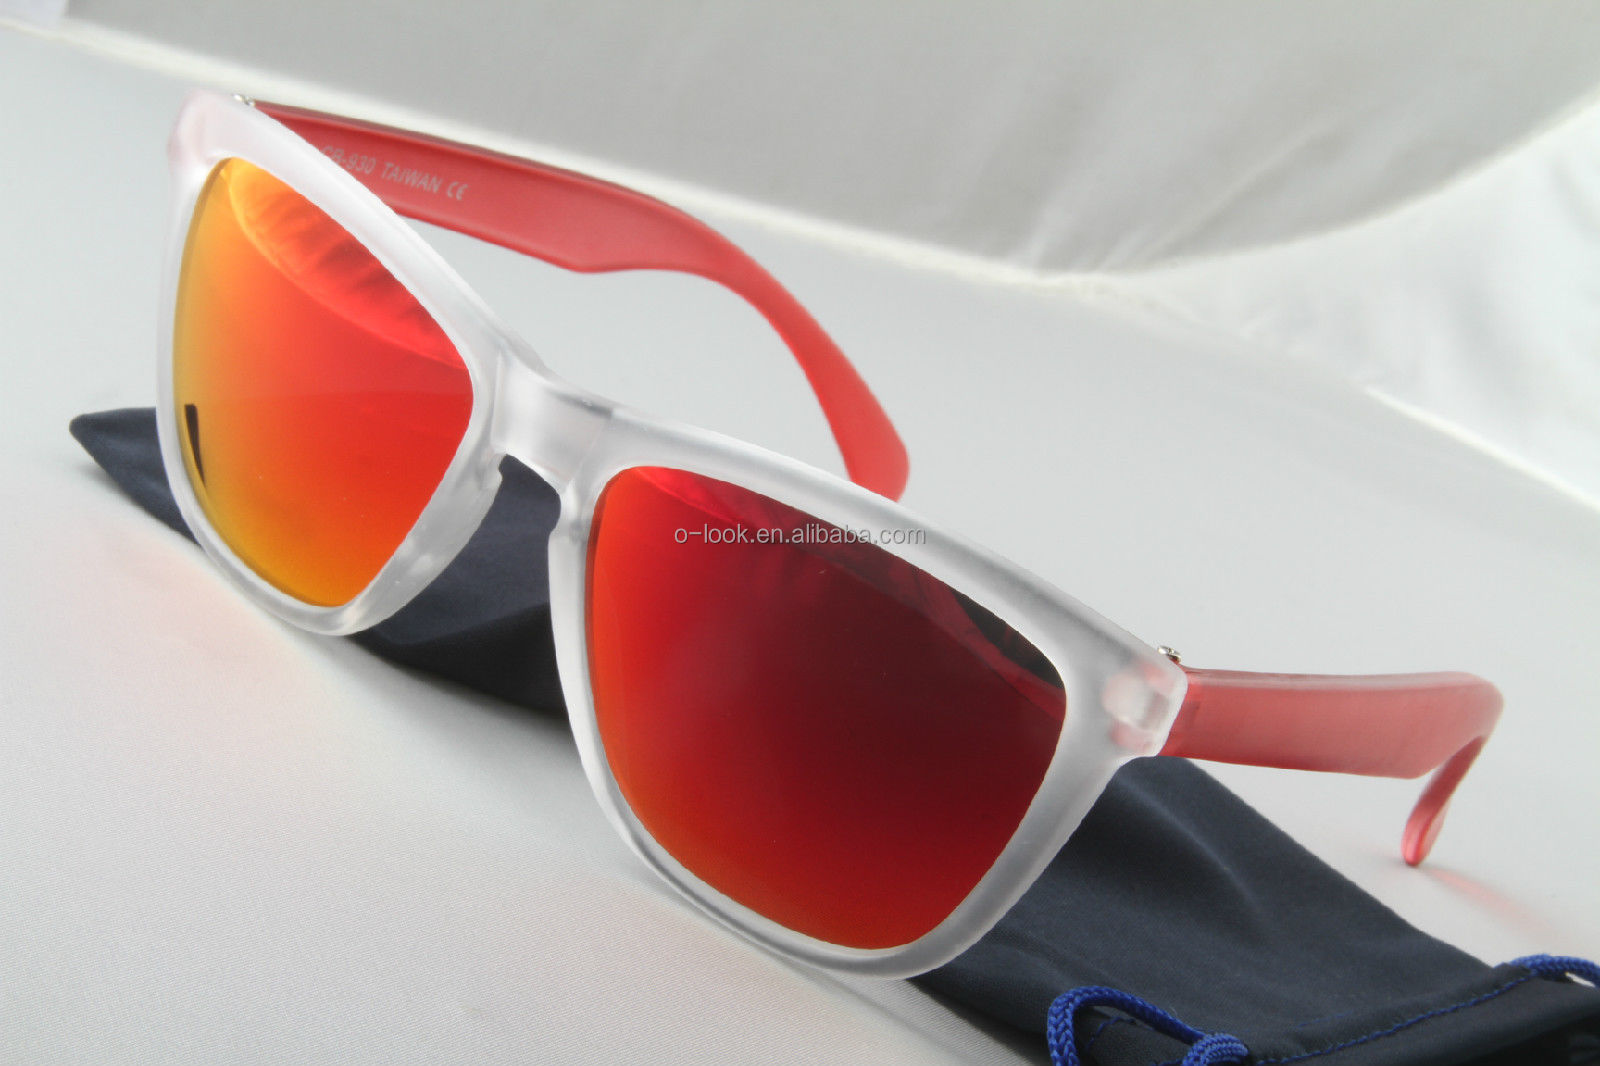 Originally designed to shield the eyes of the US aviators at high altitudes, quality has always been in the DNA of Ray-Ban glasses and sunglasses. Over 75 years later, the Aviator is still the most established icon in the eyewear market, together with others like the original Ray-Ban Wayfarer, Clubmaster and prescription frames.